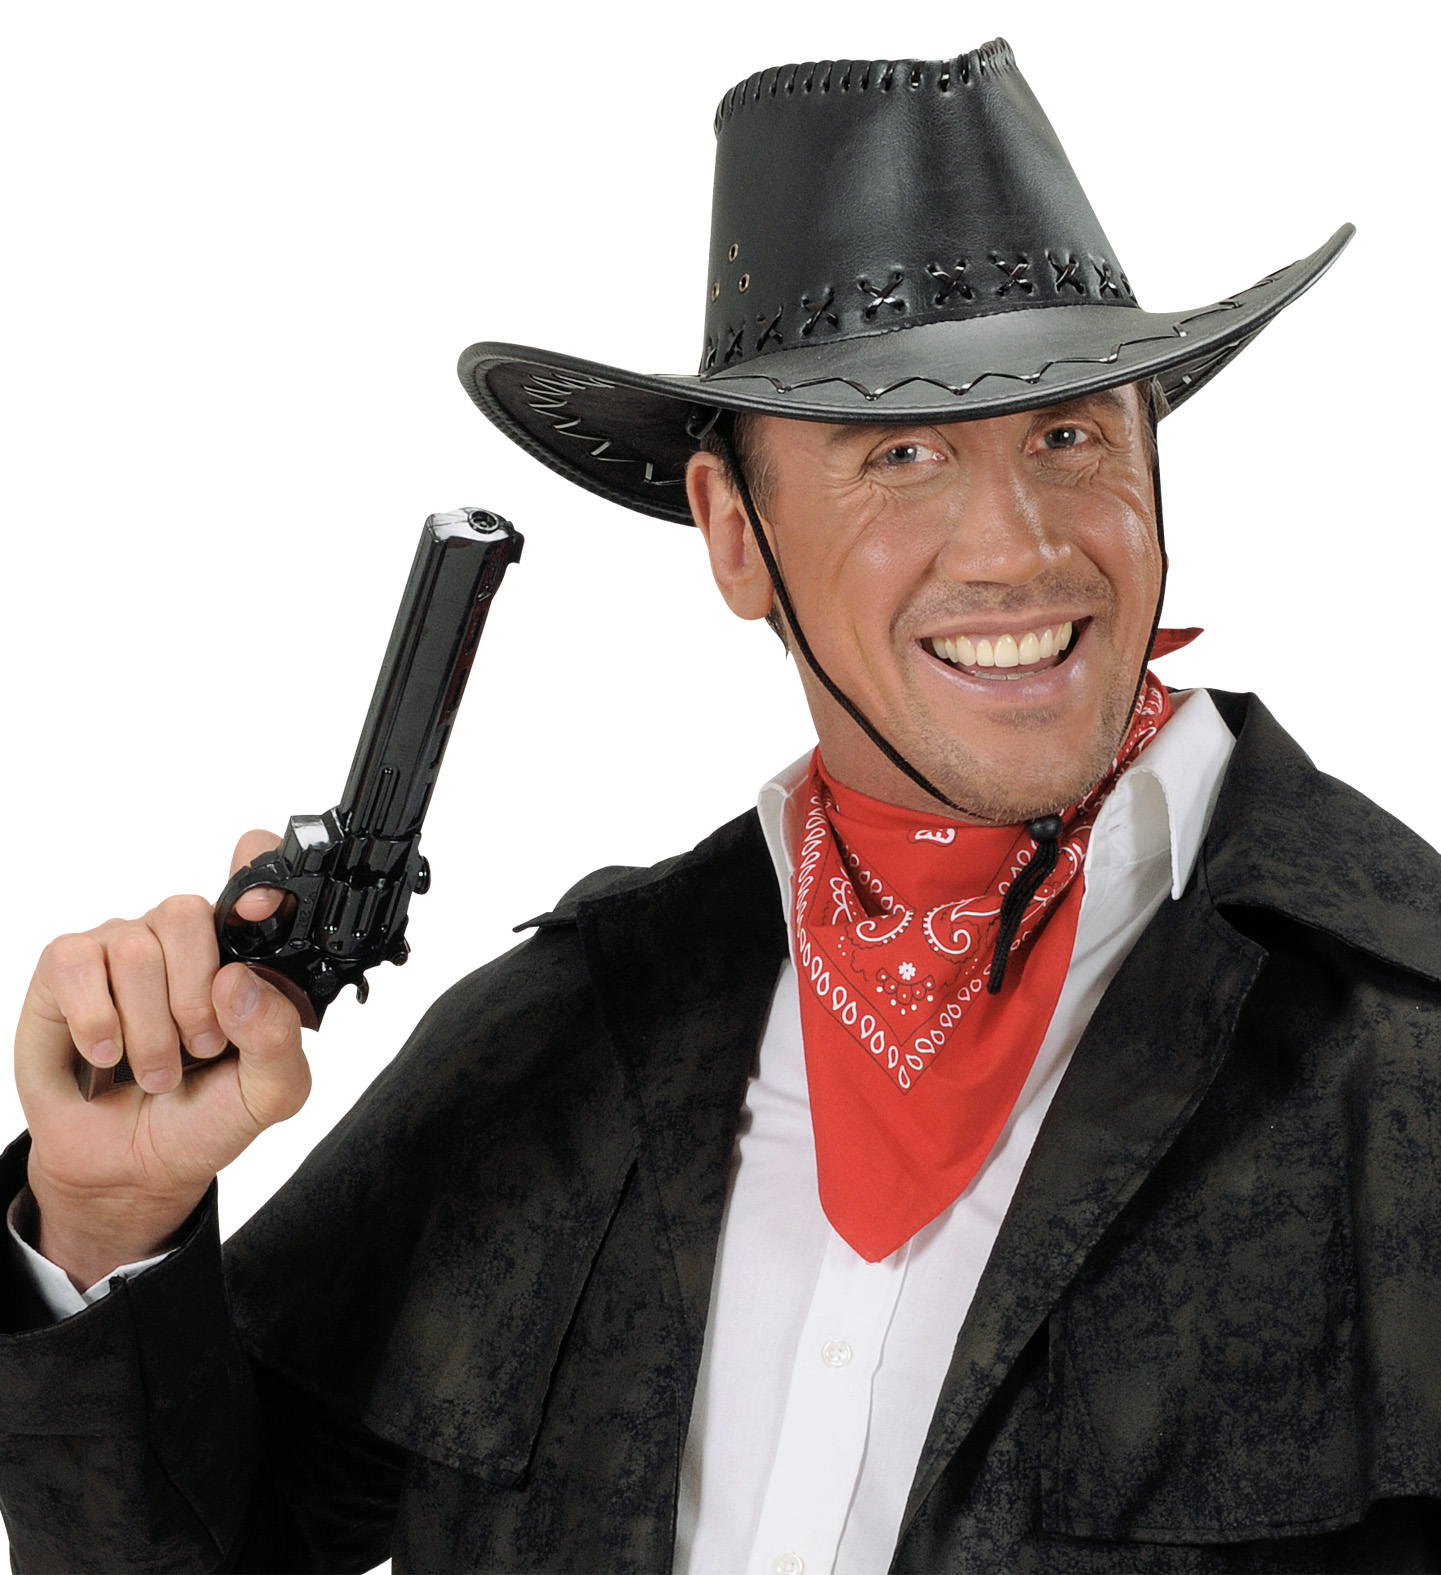 ACCESSORIES/GUNS&WEAPONS/VODKA COWBOY GUNS - 30cm